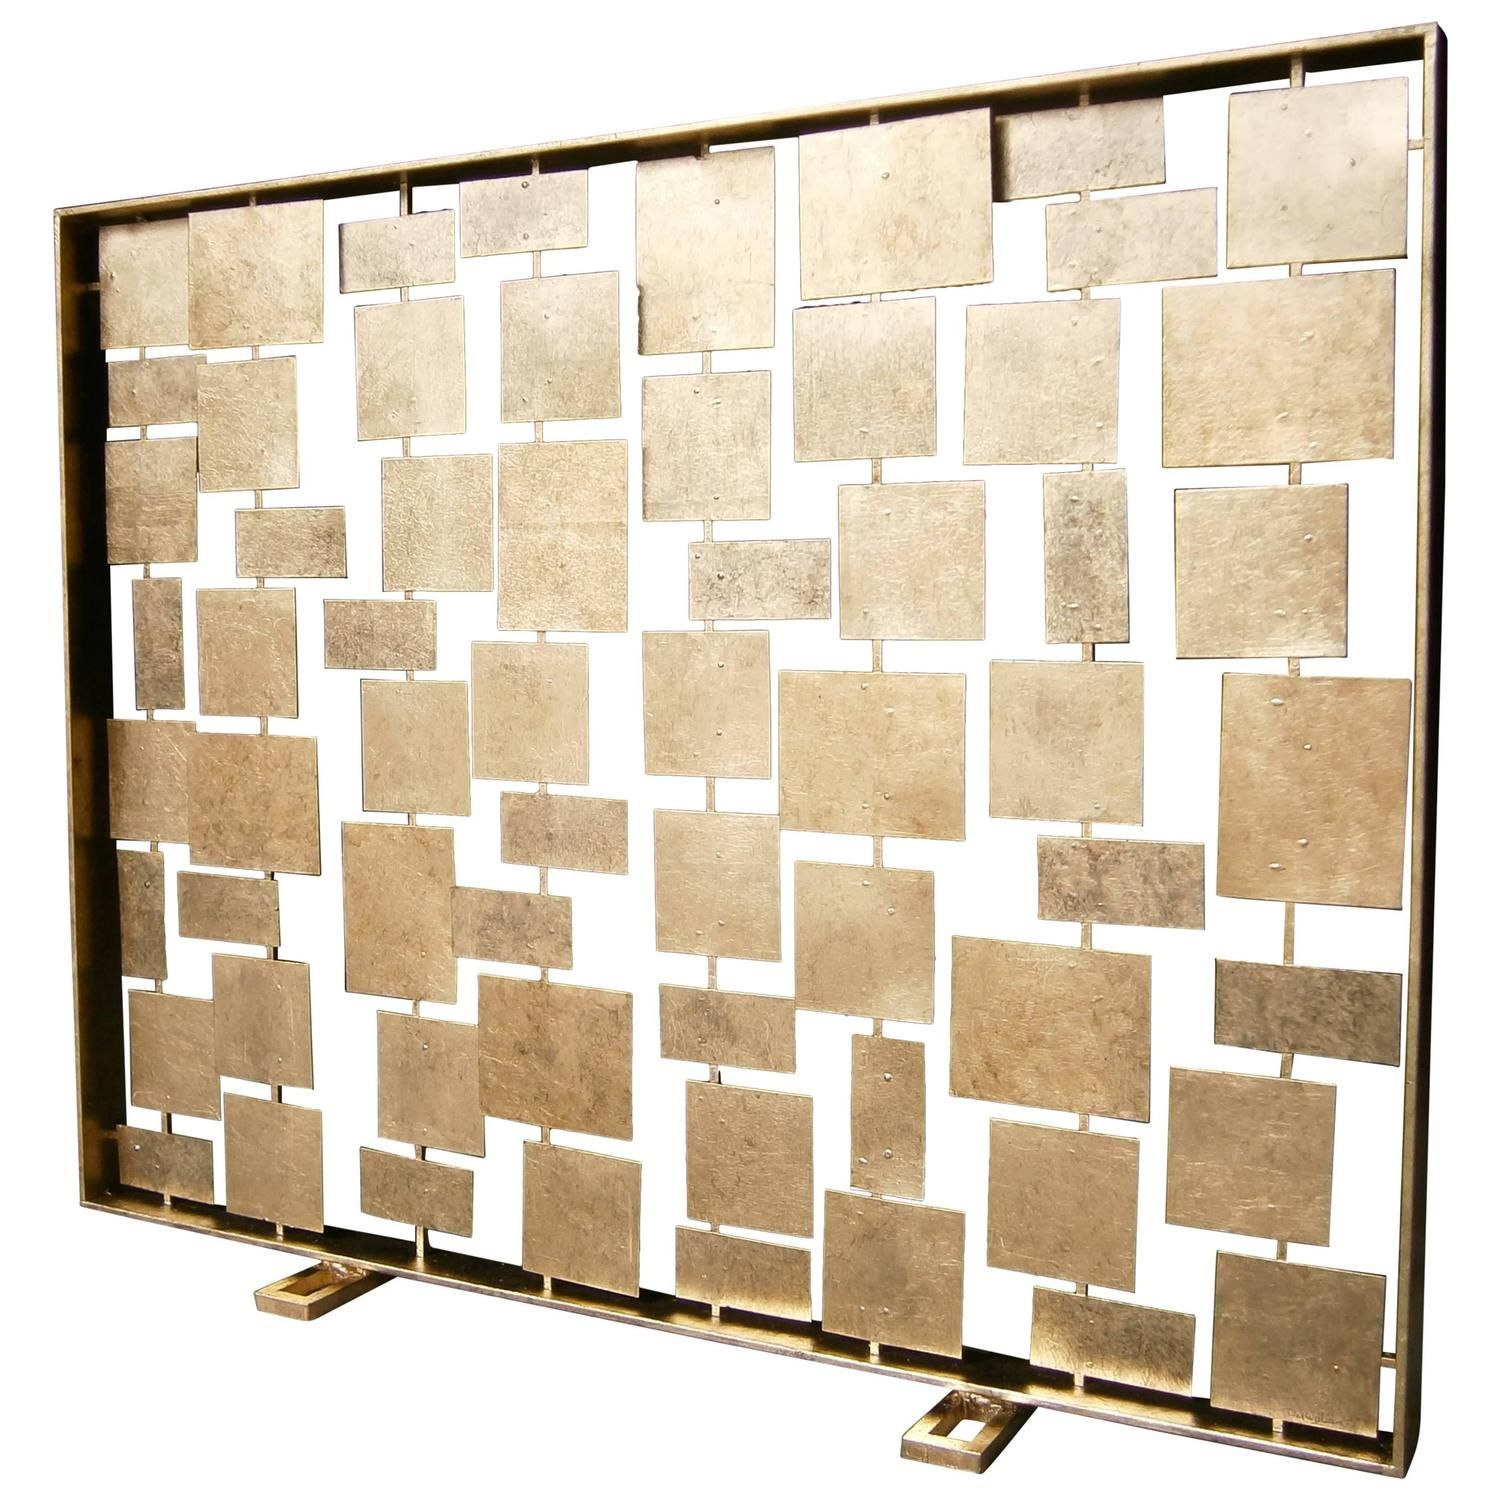 forms a contemporary gilded metal fire screen by american artist